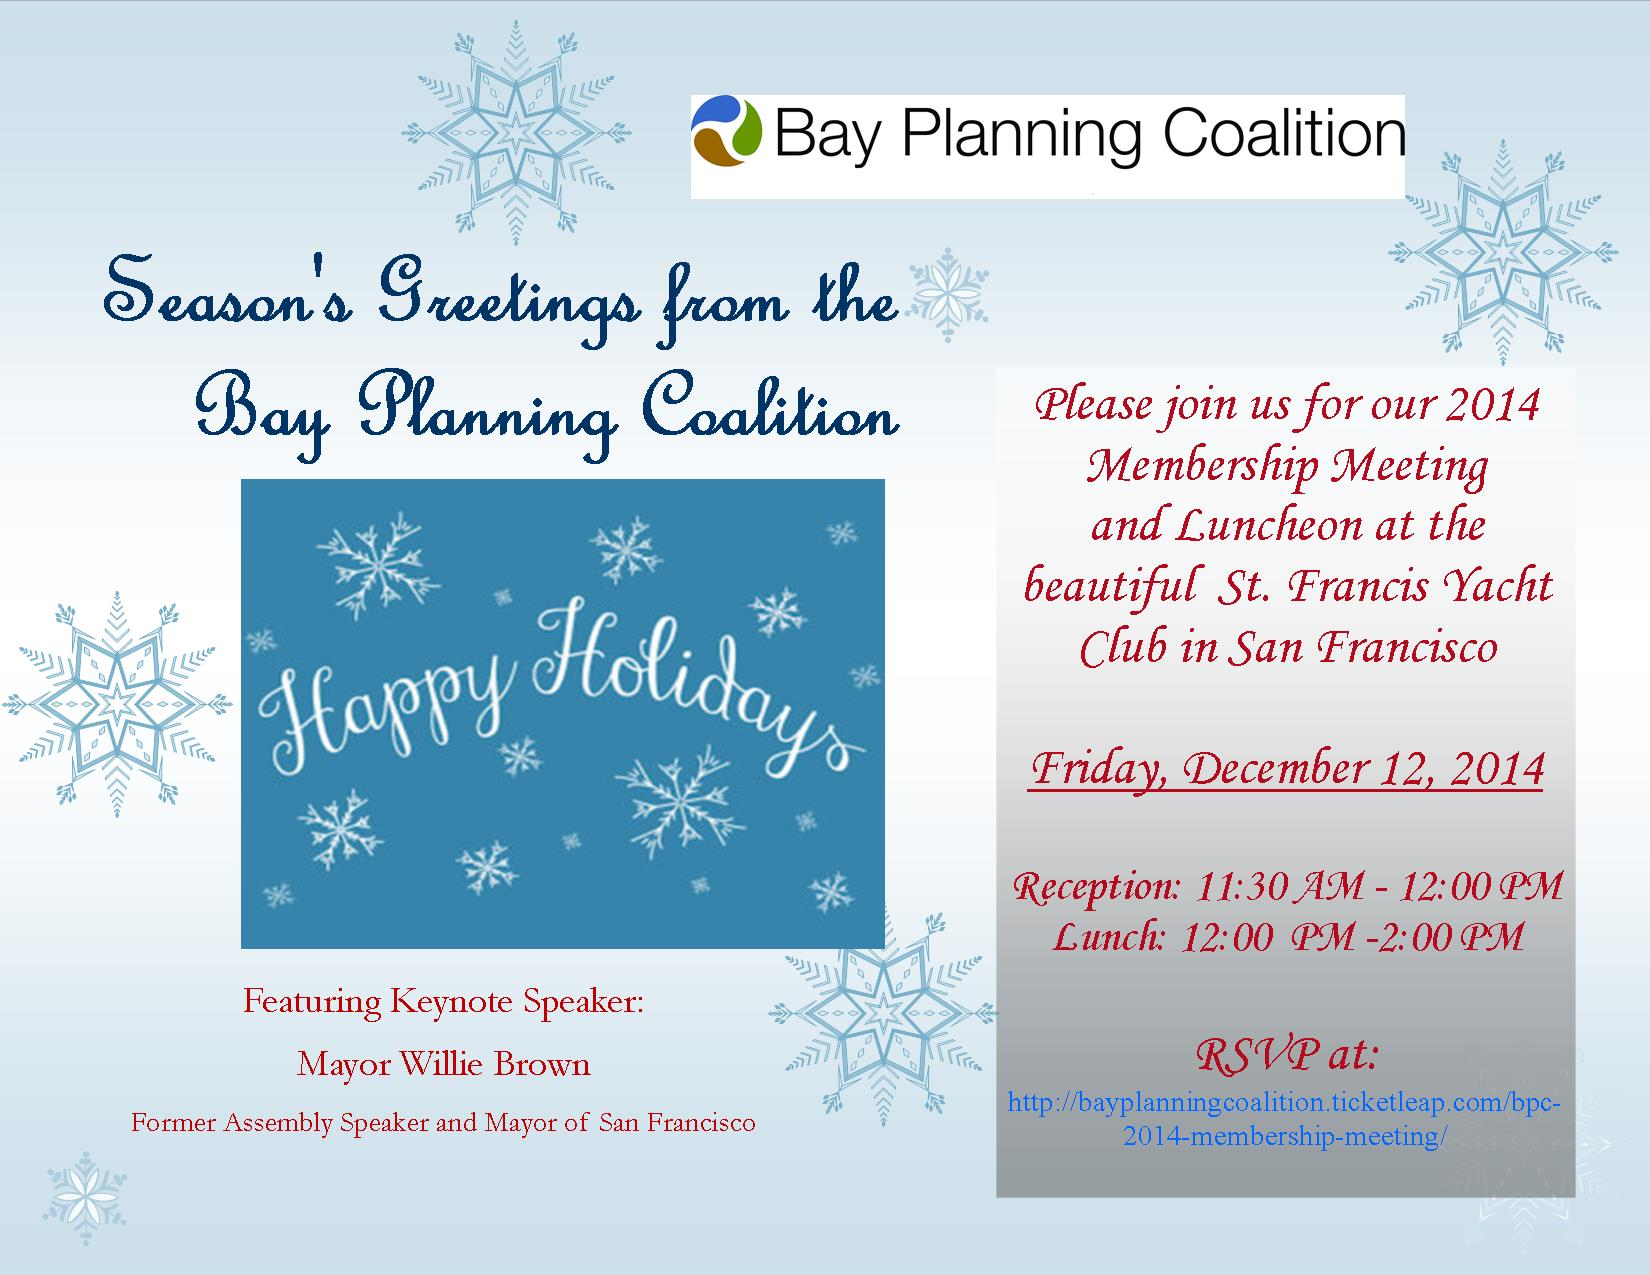 Bay Planning Coalition 2014 Annual Membership Meeting Luncheon